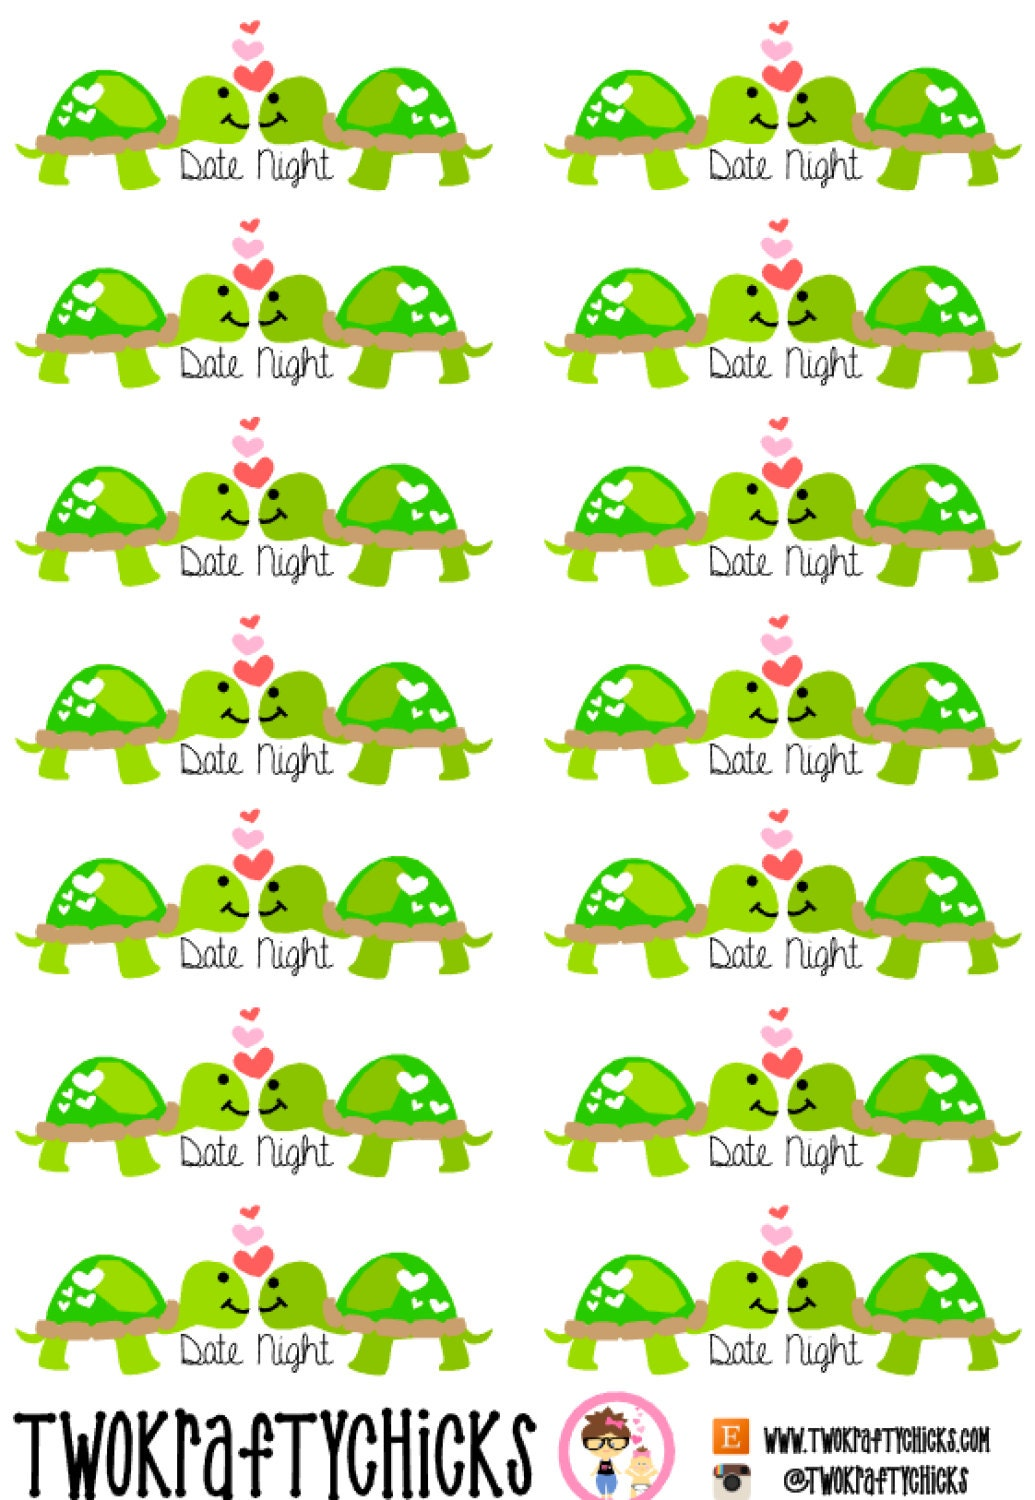 Turtle dating